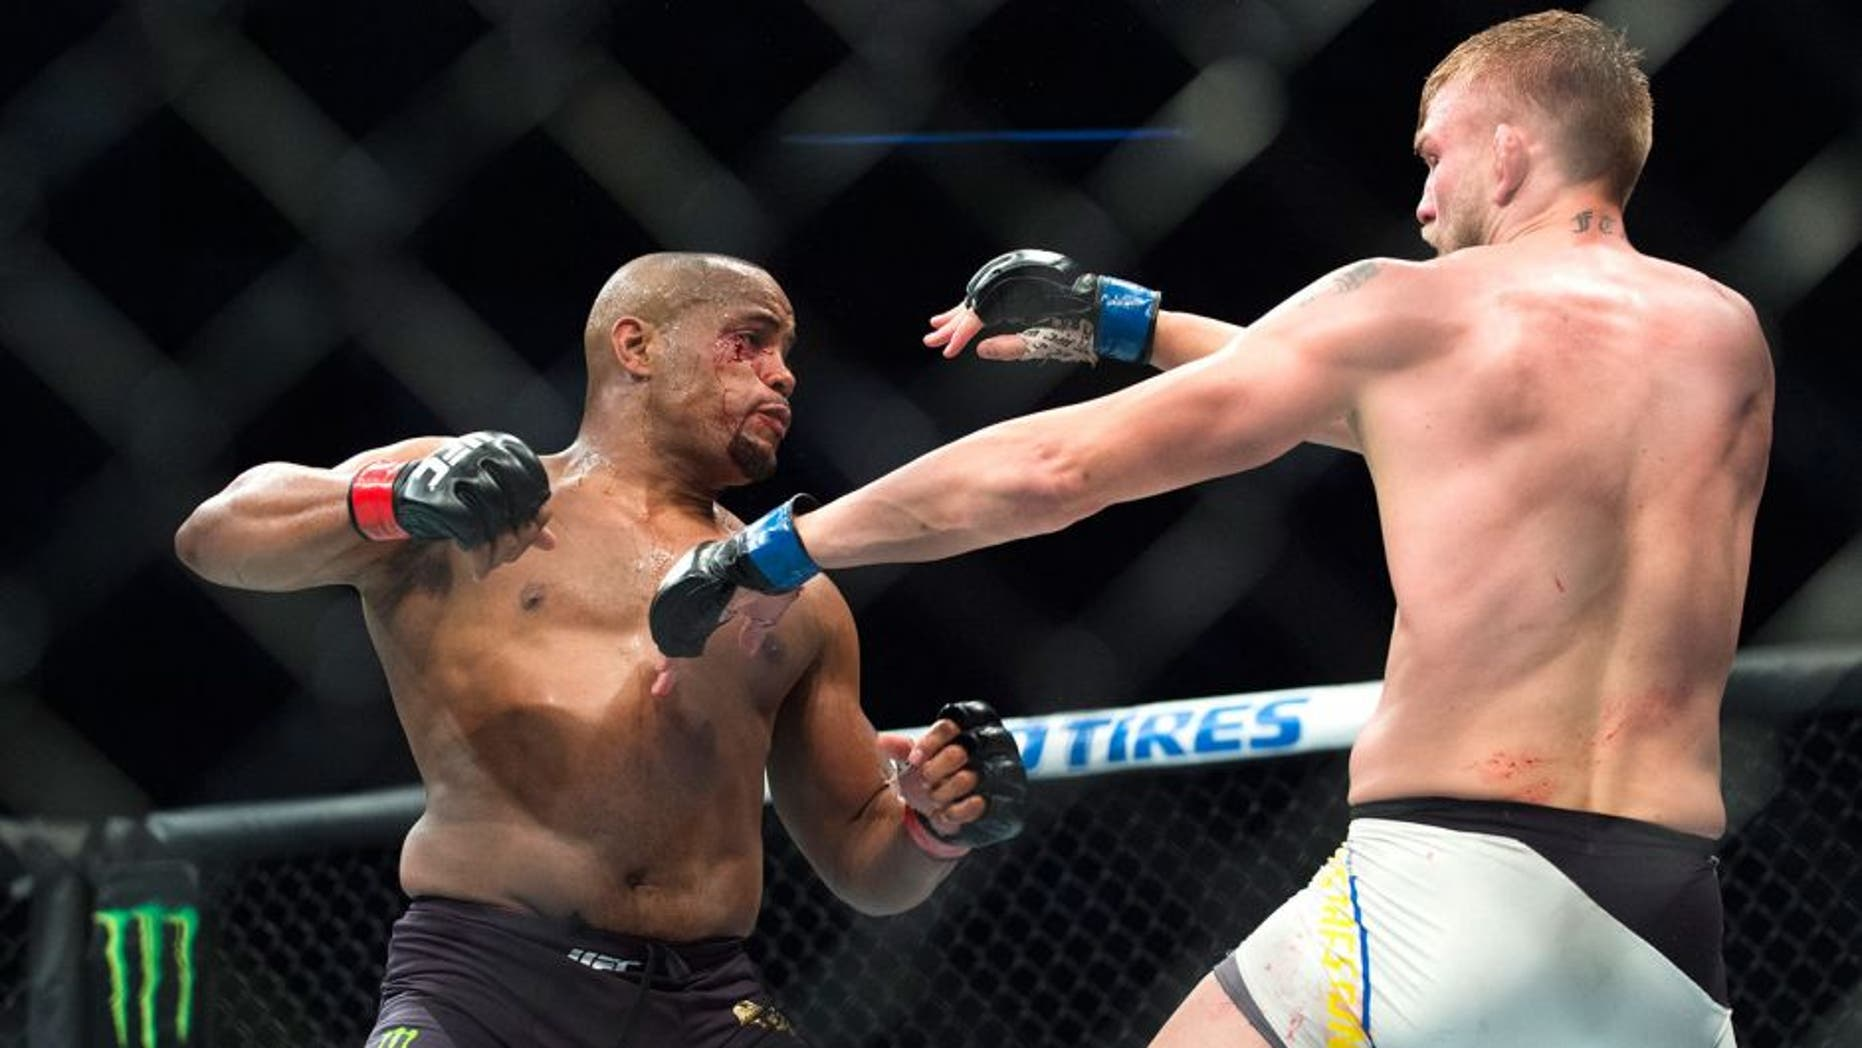 HOUSTON, TX - OCTOBER 3: Daniel Cormier throws a punch against Alexander Gustafsson during UFC 192 at the Toyota Center on October 3, 2015 in Houston, Texas. (Photo by Cooper Neill/Zuffa LLC/Zuffa LLC via Getty Images)